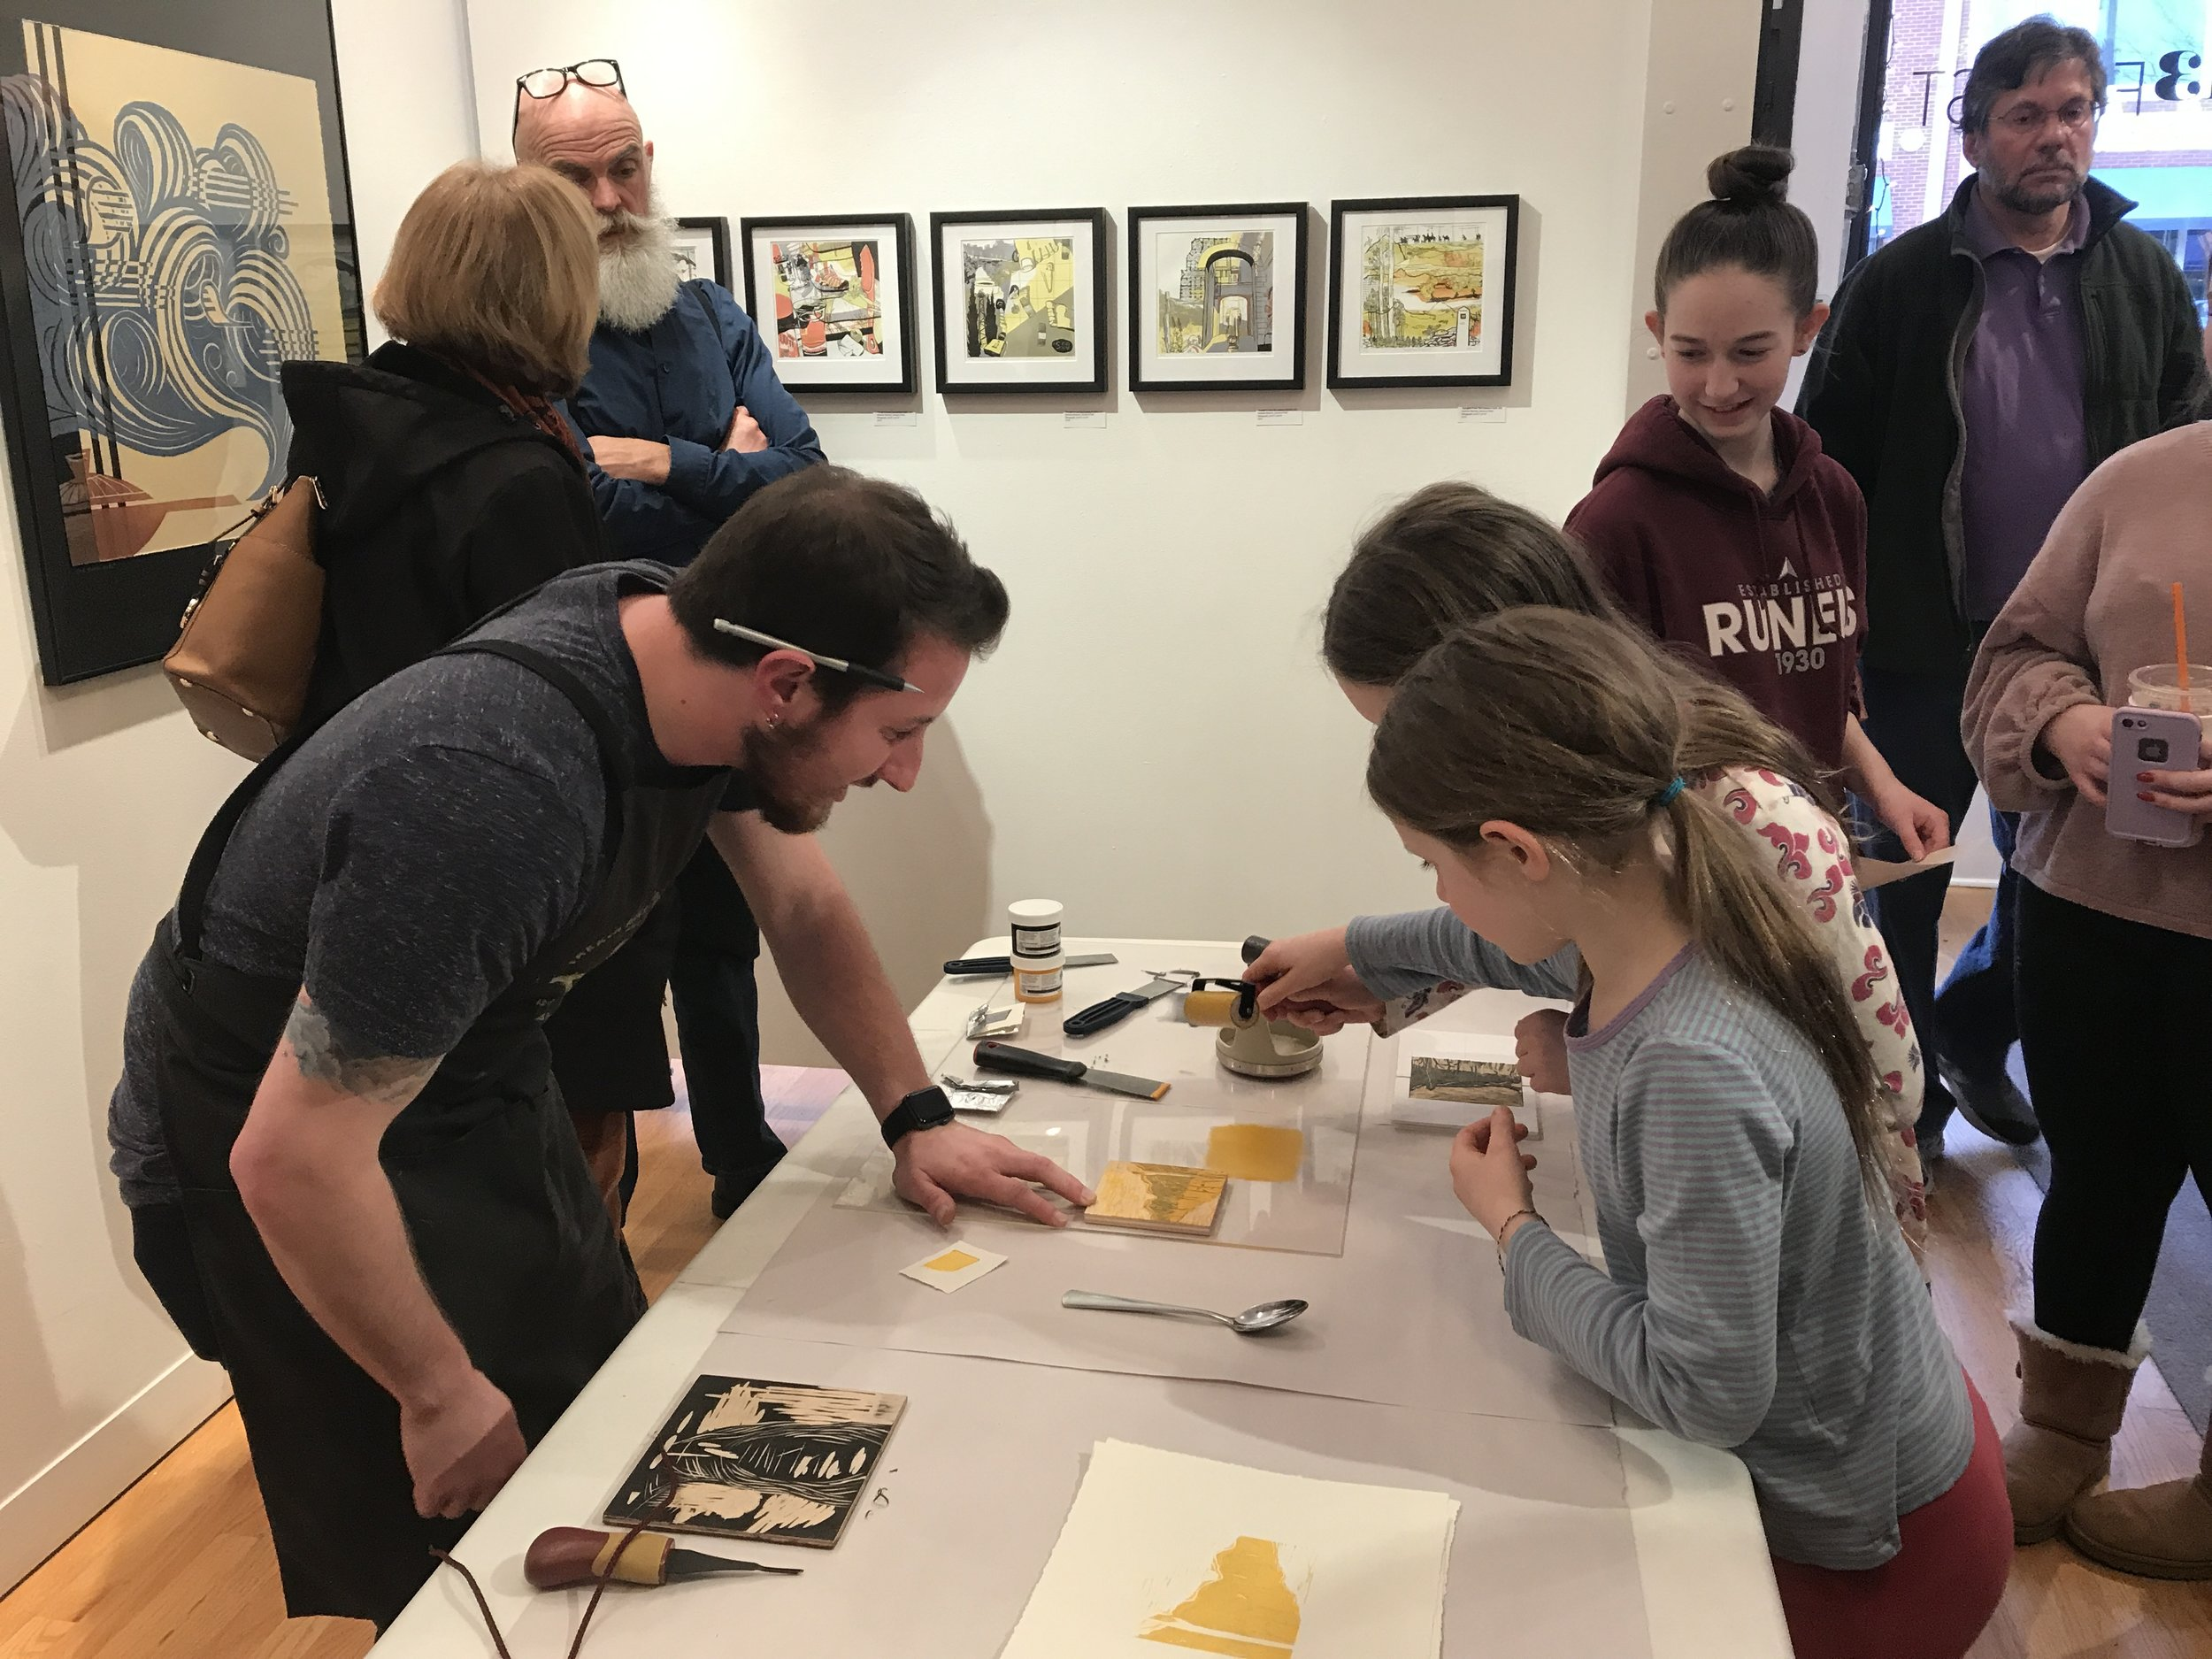 Stearns helping some budding artists make their own prints.